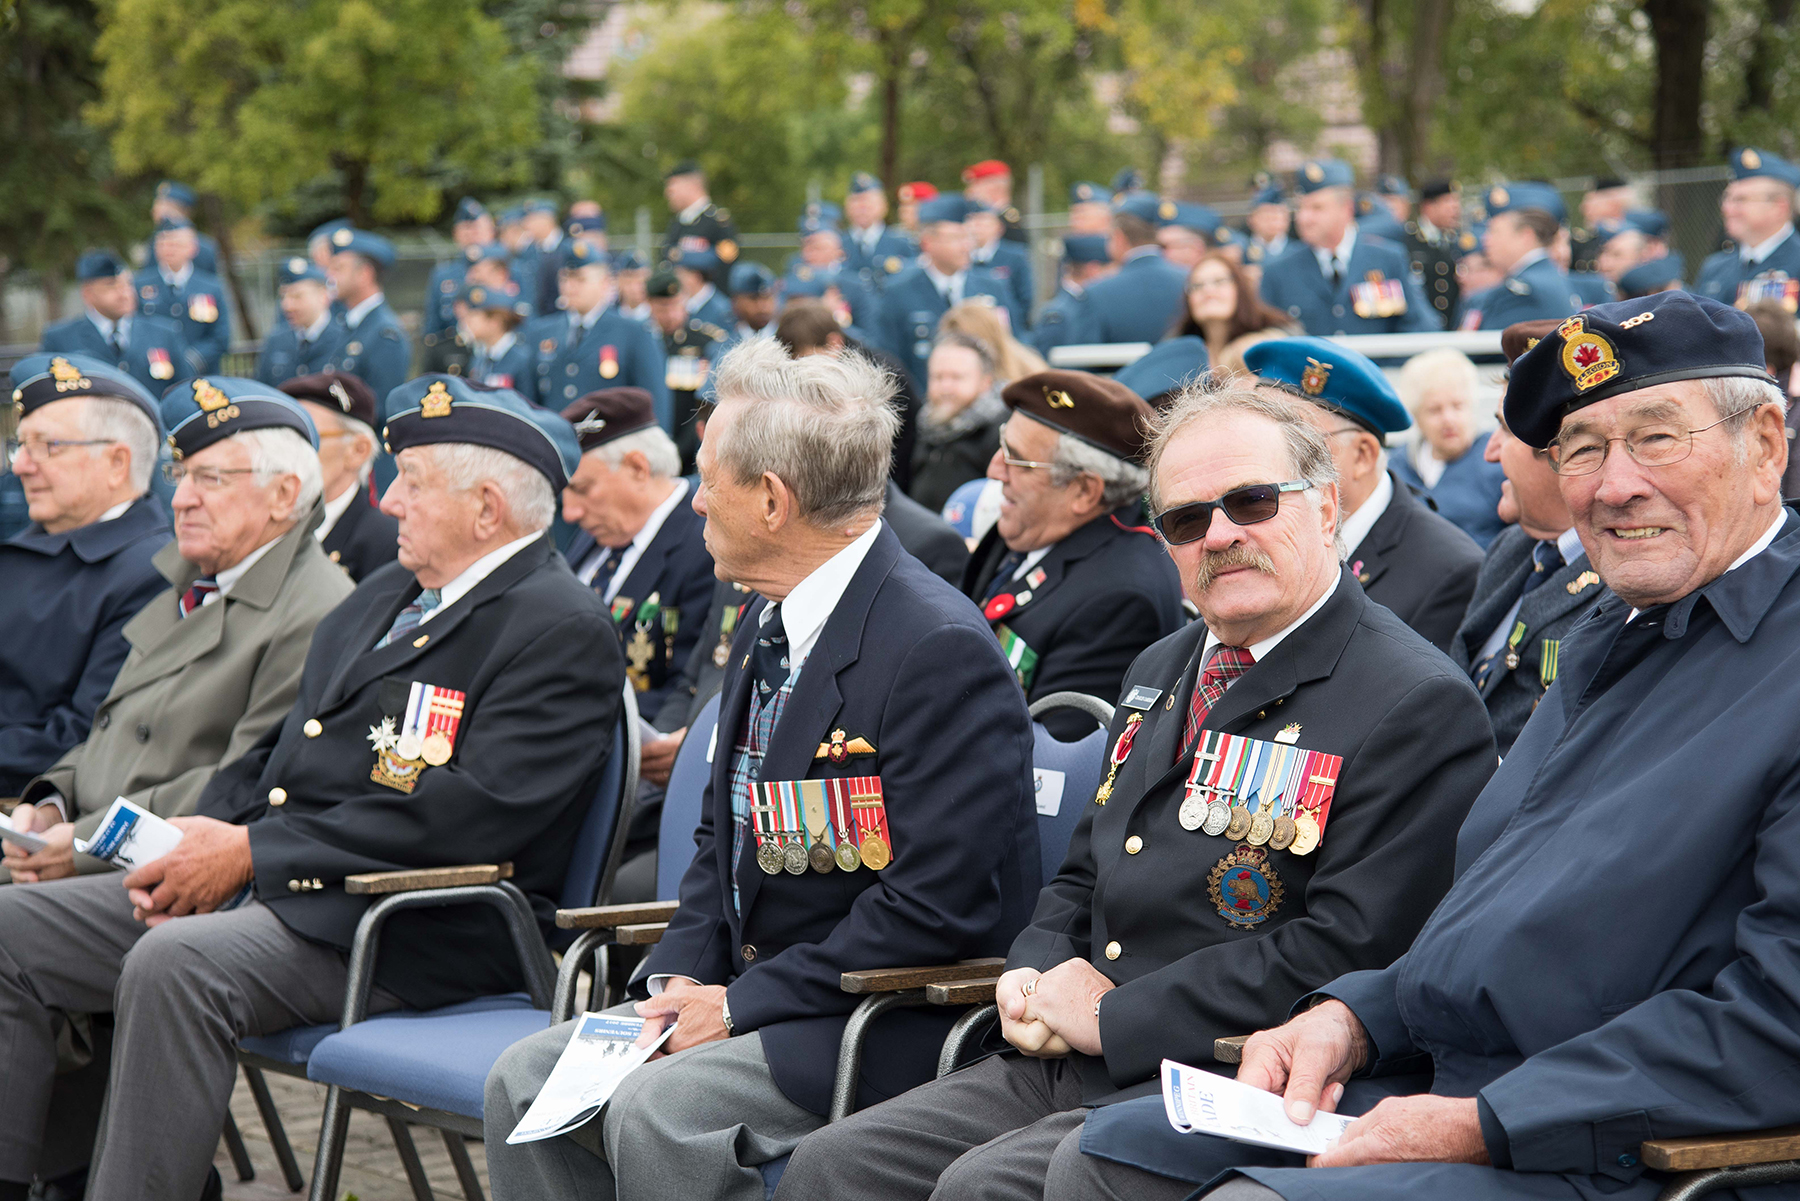 Participants in this year's Battle of Britain commemoration at 17 Wing Winnipeg, Manitoba, included veterans of the Royal Canadian Air Force, the Royal Canadian Air Force Women's Division, the Royal Air Force, the Royal Australian Air Force, the Royal New Zealand Air Force; the United States Air Force, the Wartime Pilots and Observers Association, and the Royal Canadian Air Force Association. PHOTO: Corporal Justin Ancelin, WG-2017-0337-03